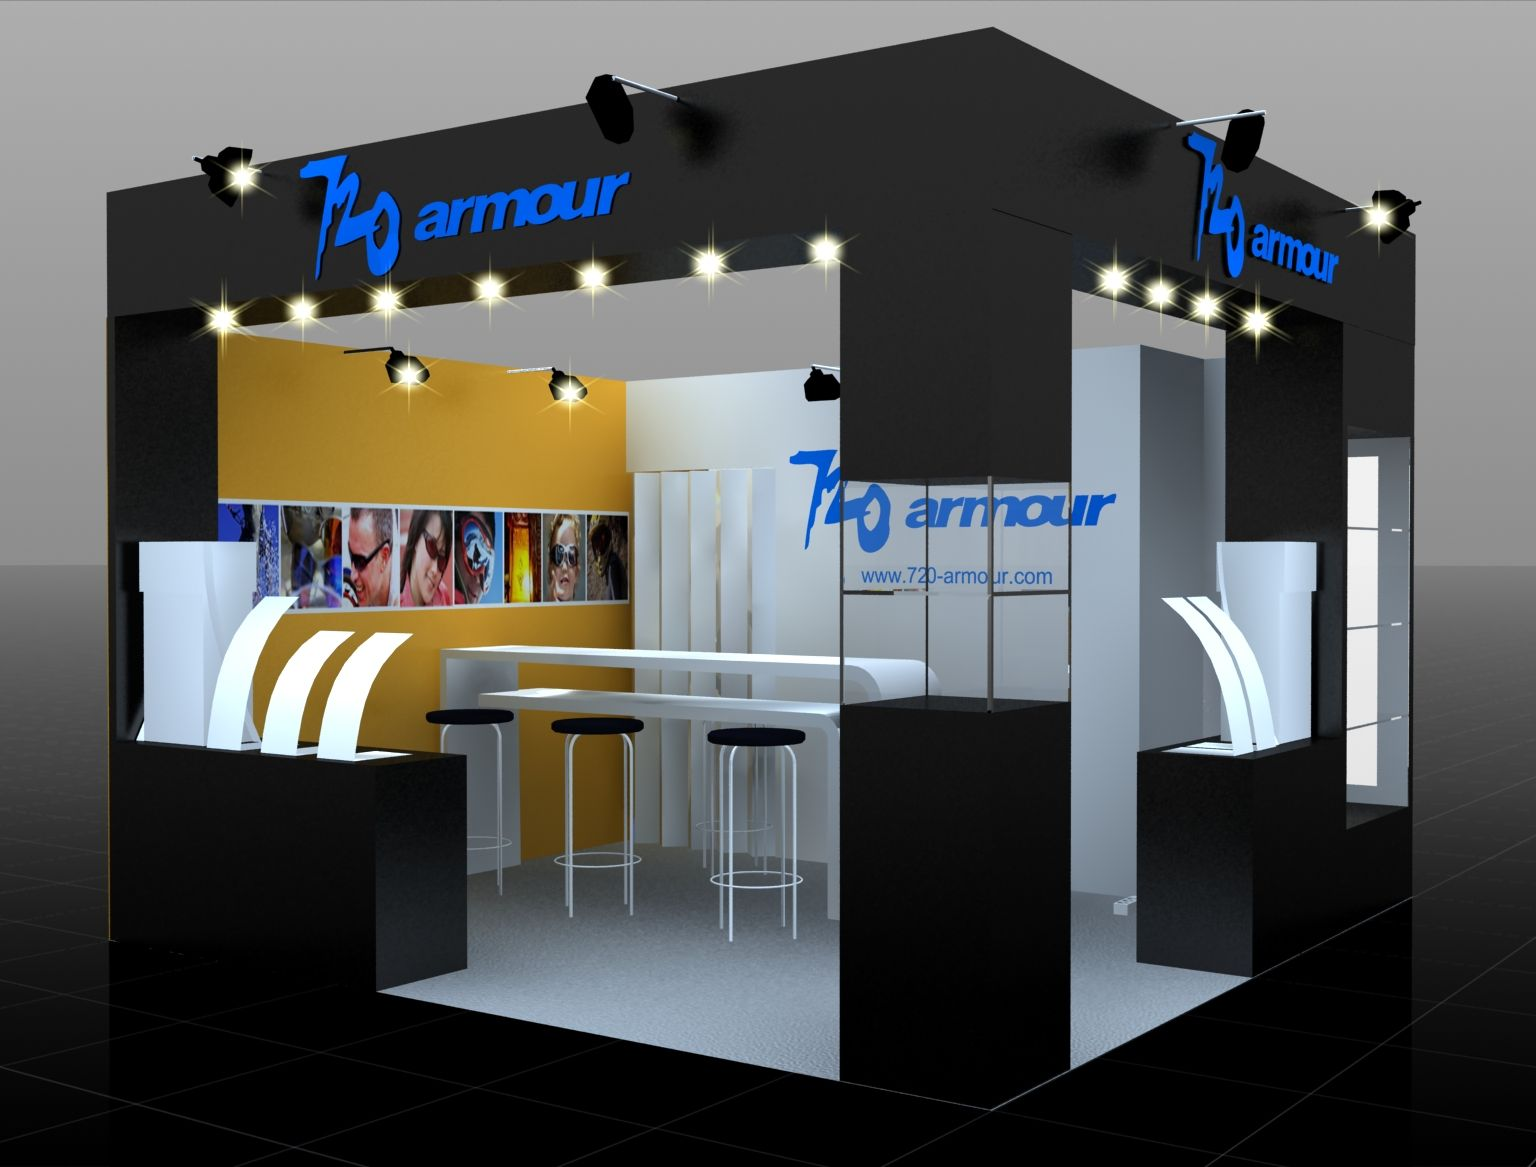 Trade Show Booth Layout : Trade show booth layout design trade show booth image search